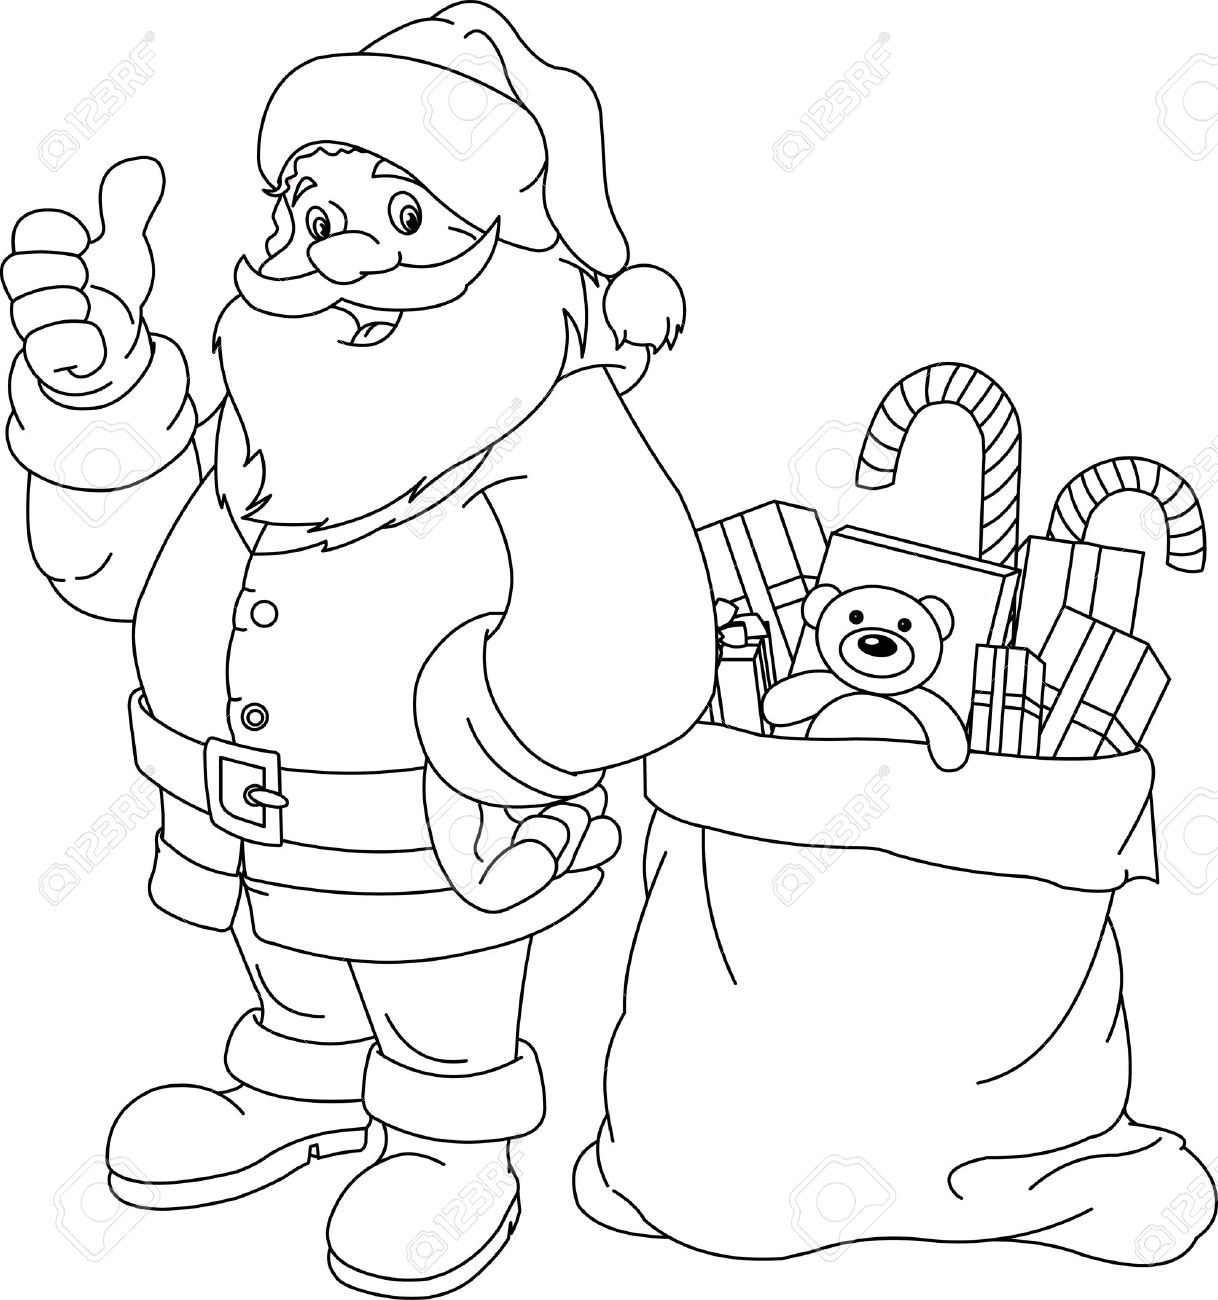 coloring page for christmas and new year santa claus bag with